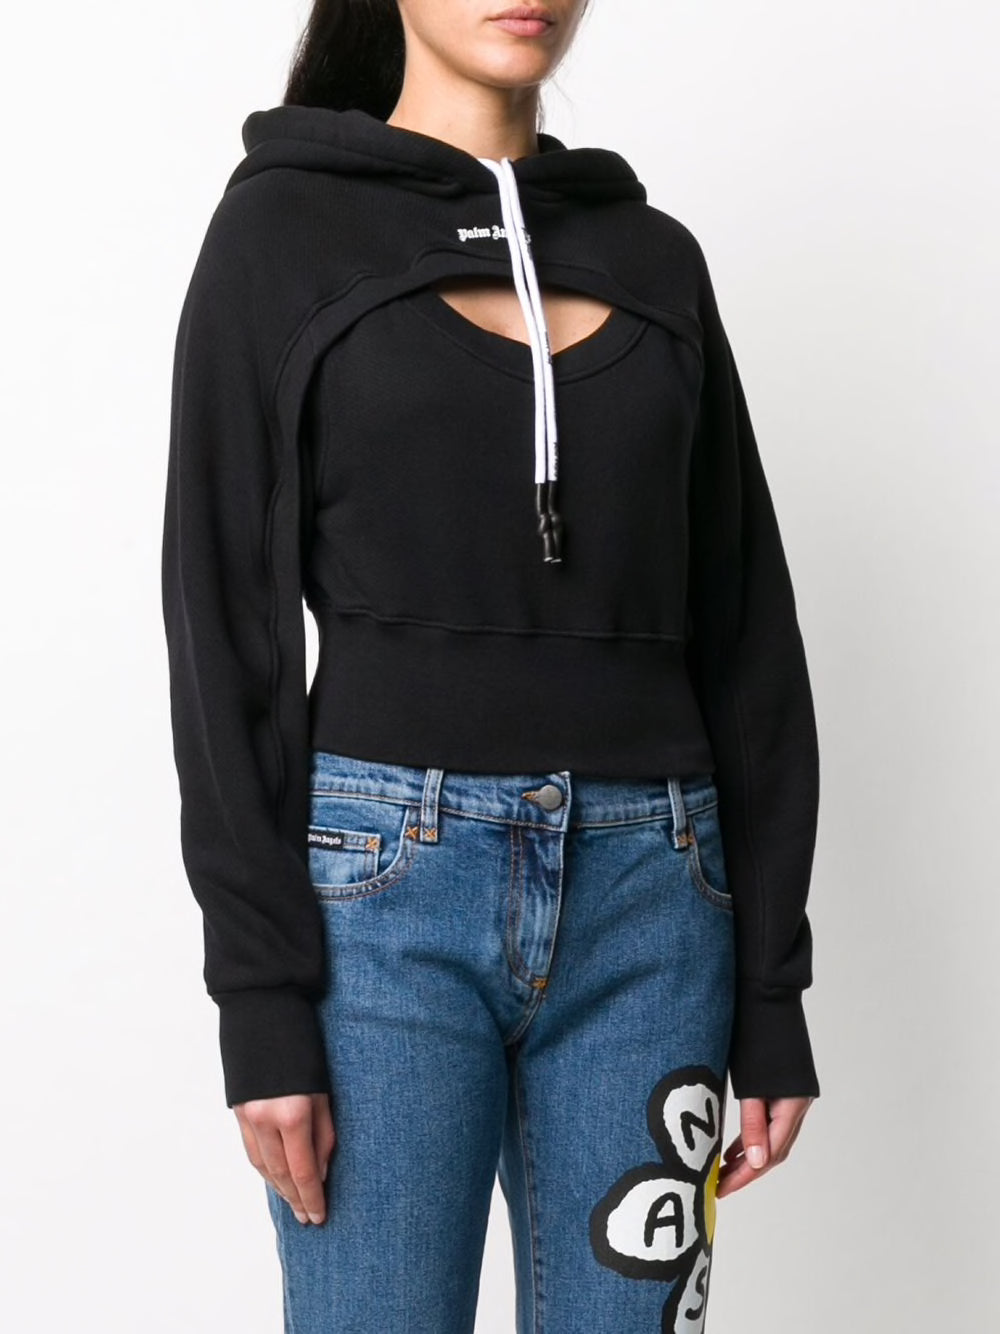 PALM ANGELS WOMEN CUT-OUT LOGO HOODY